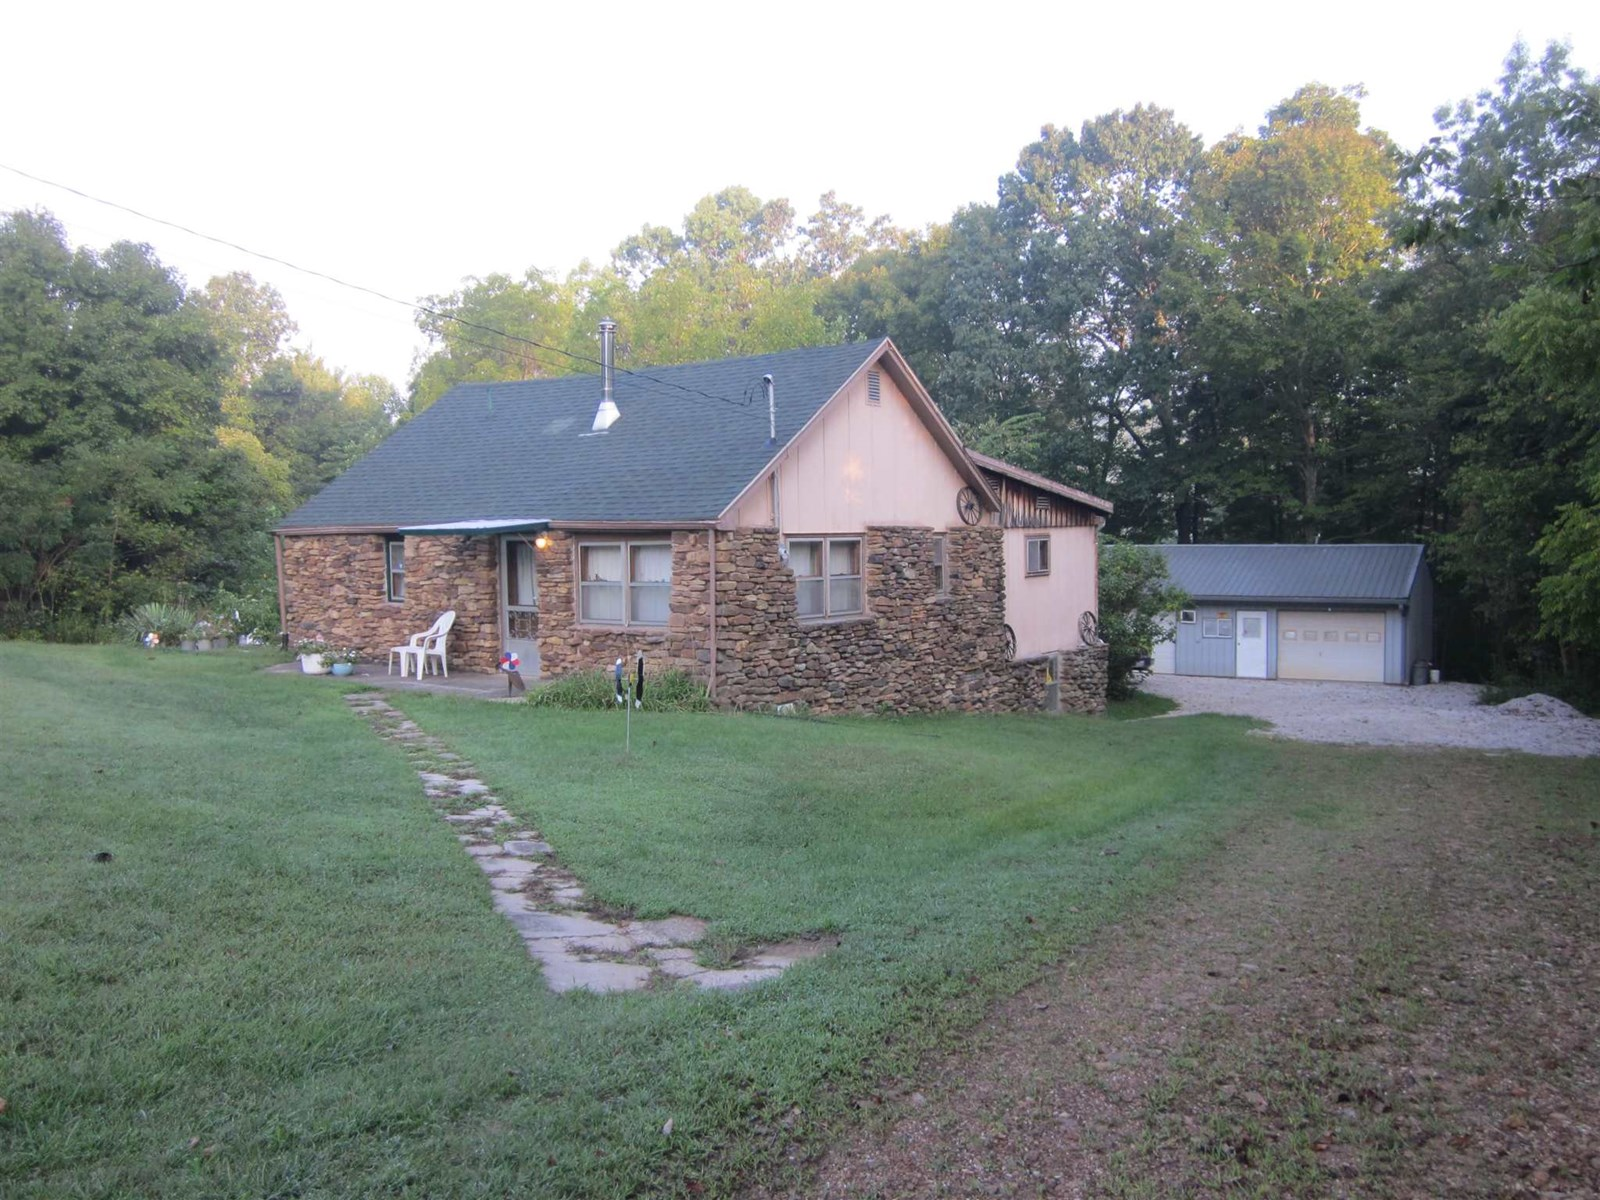 Greene County Country Home for Sale | Bloomfield, Indiana